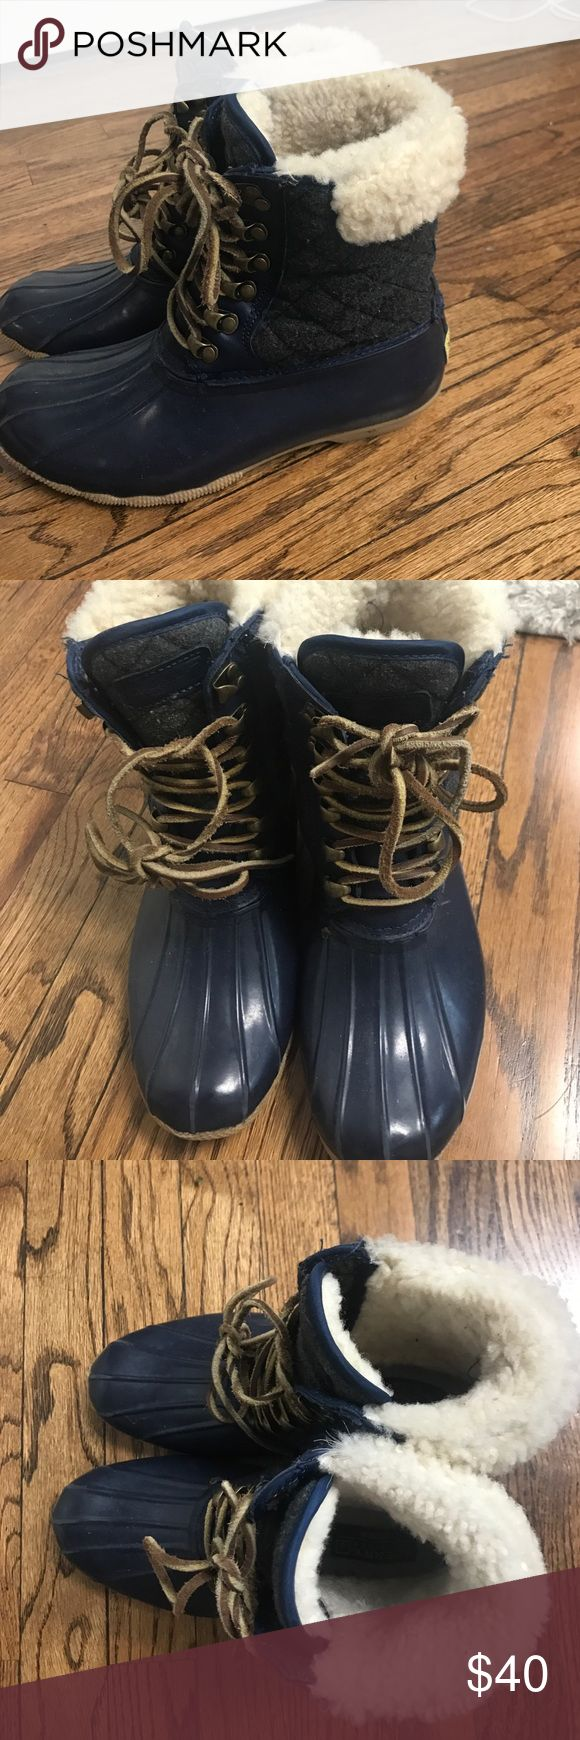 Sperry duck boots Women's duck boots size 7 great for rain and snow. Navy and grey with white trim fur Sperry Top-Sider Shoes Winter & Rain Boots